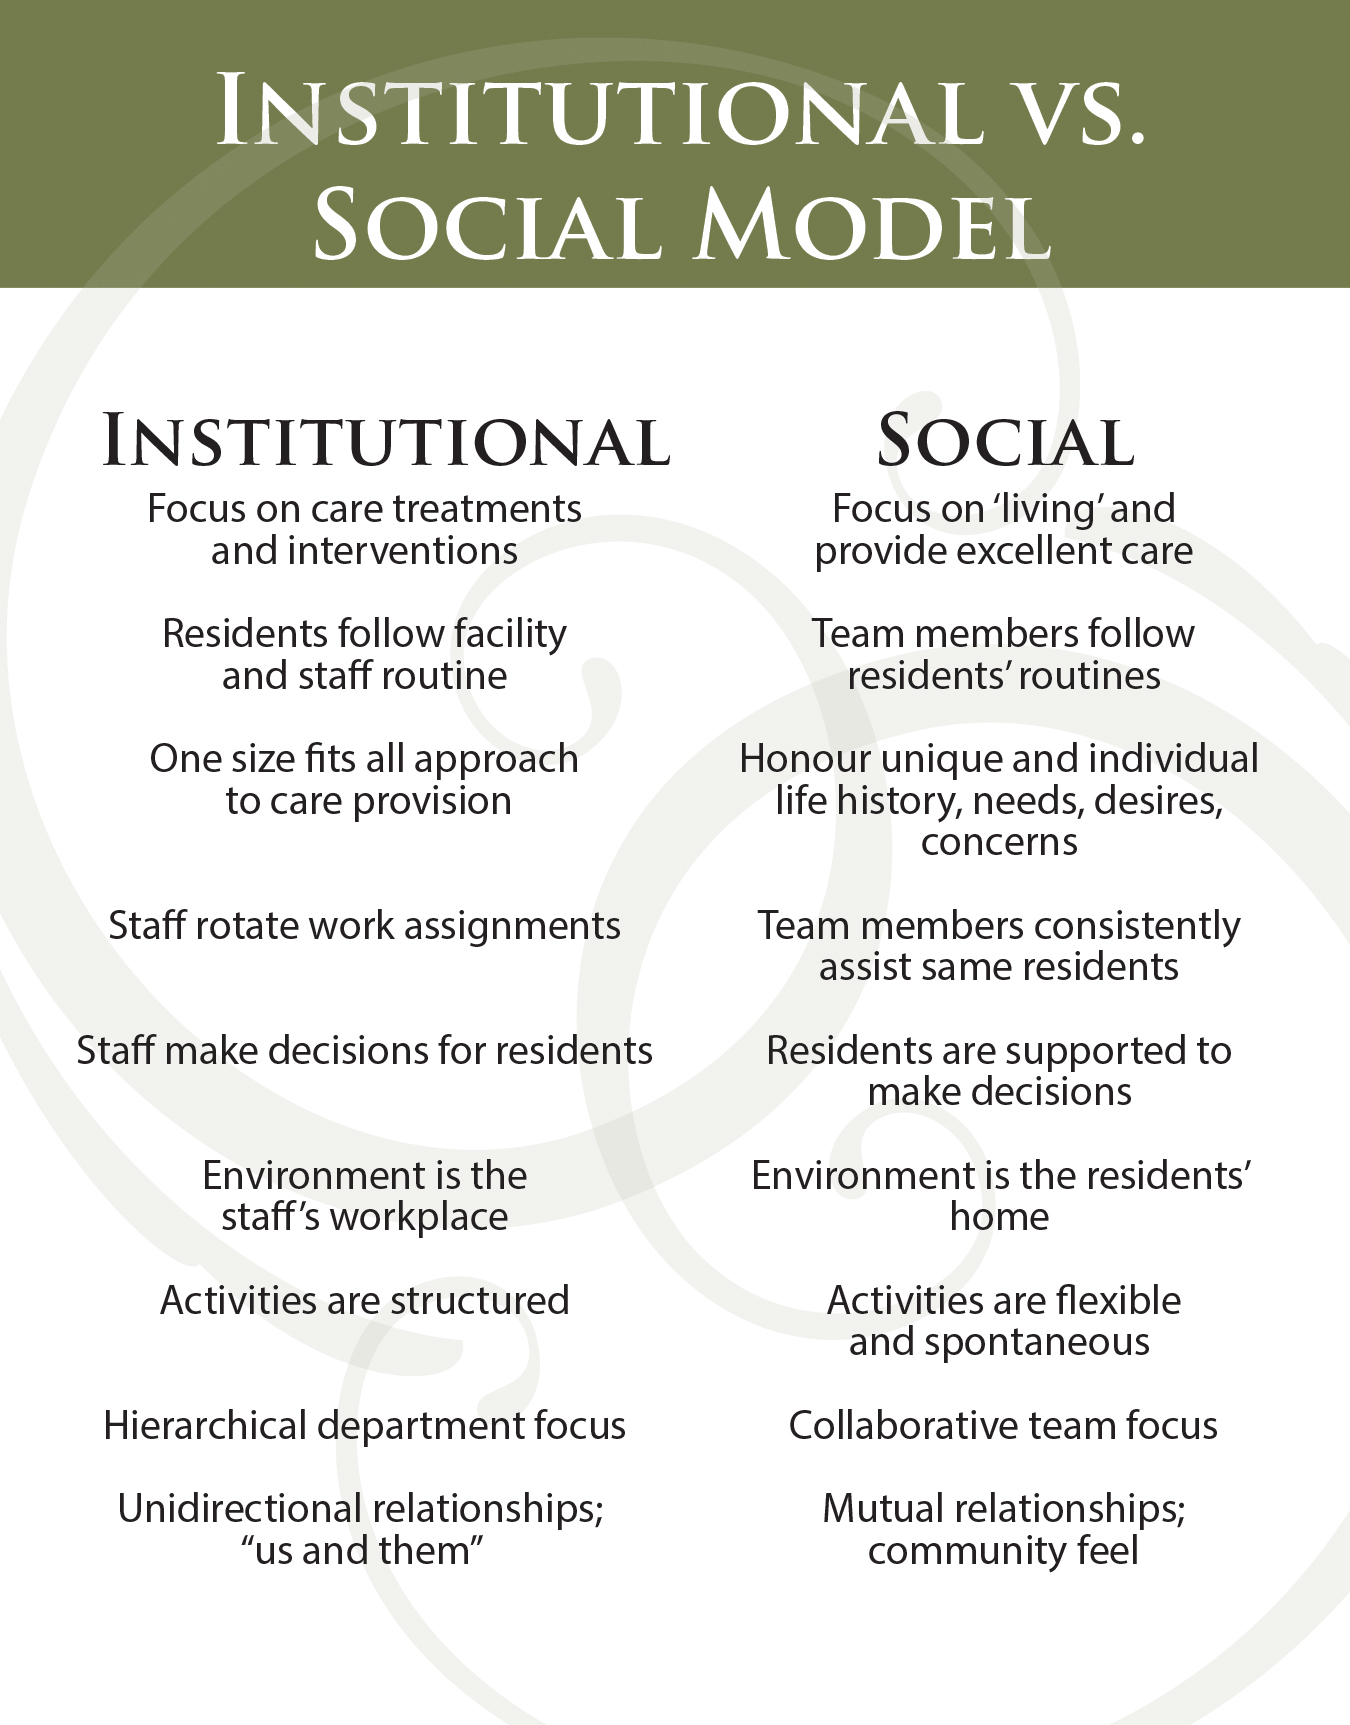 Institutional Model versus Social Model